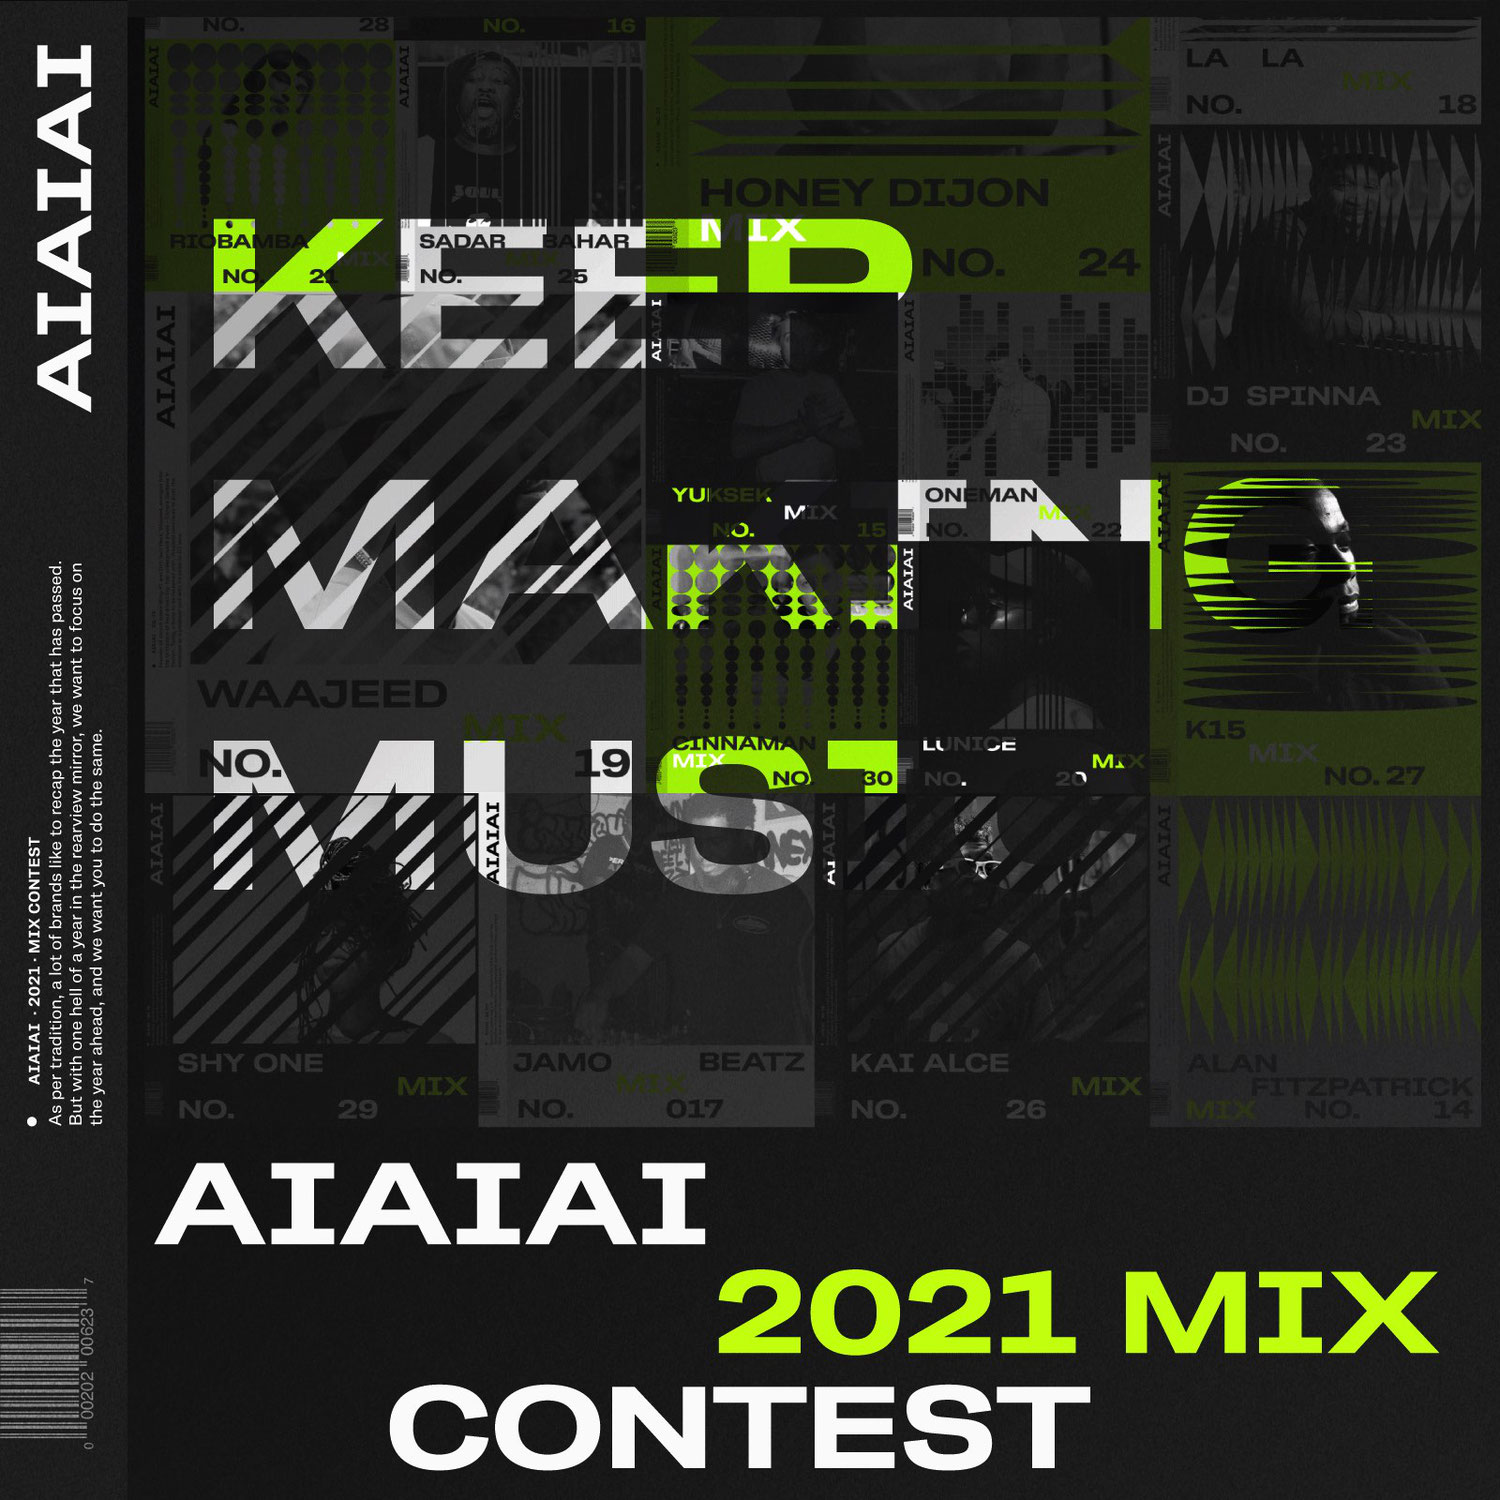 AIAIAI 2021 Mix Contest